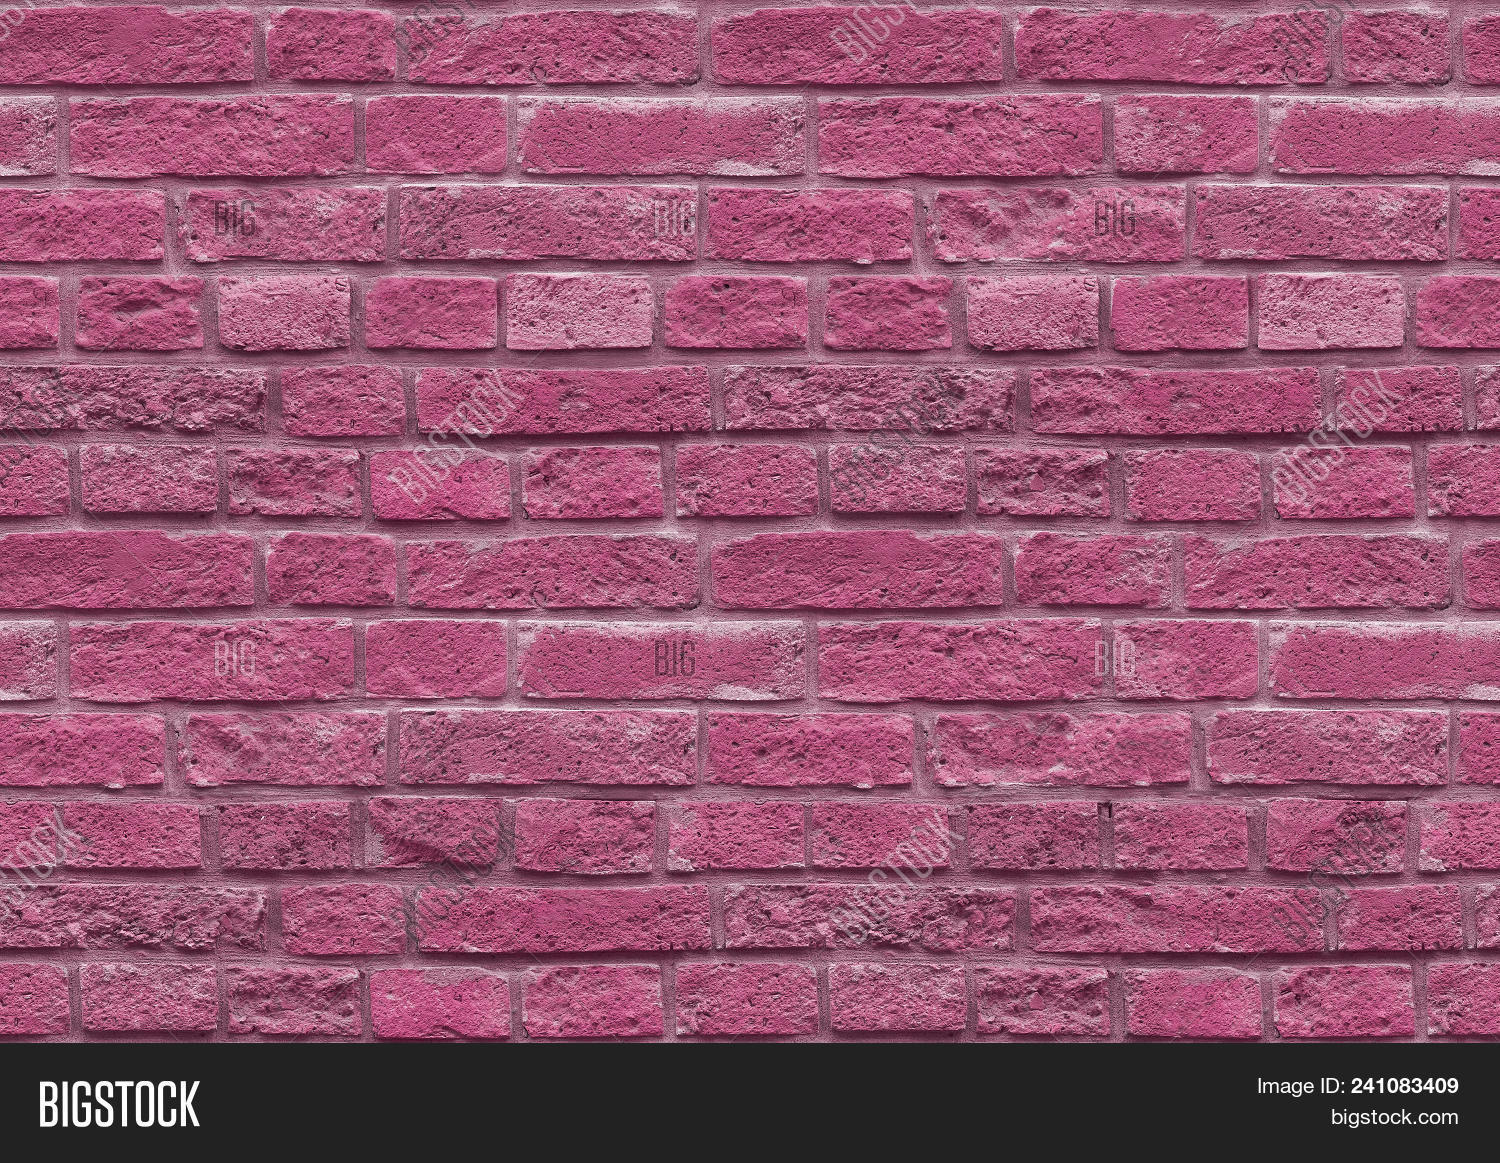 High Resolution Pink Image Photo Free Trial Bigstock